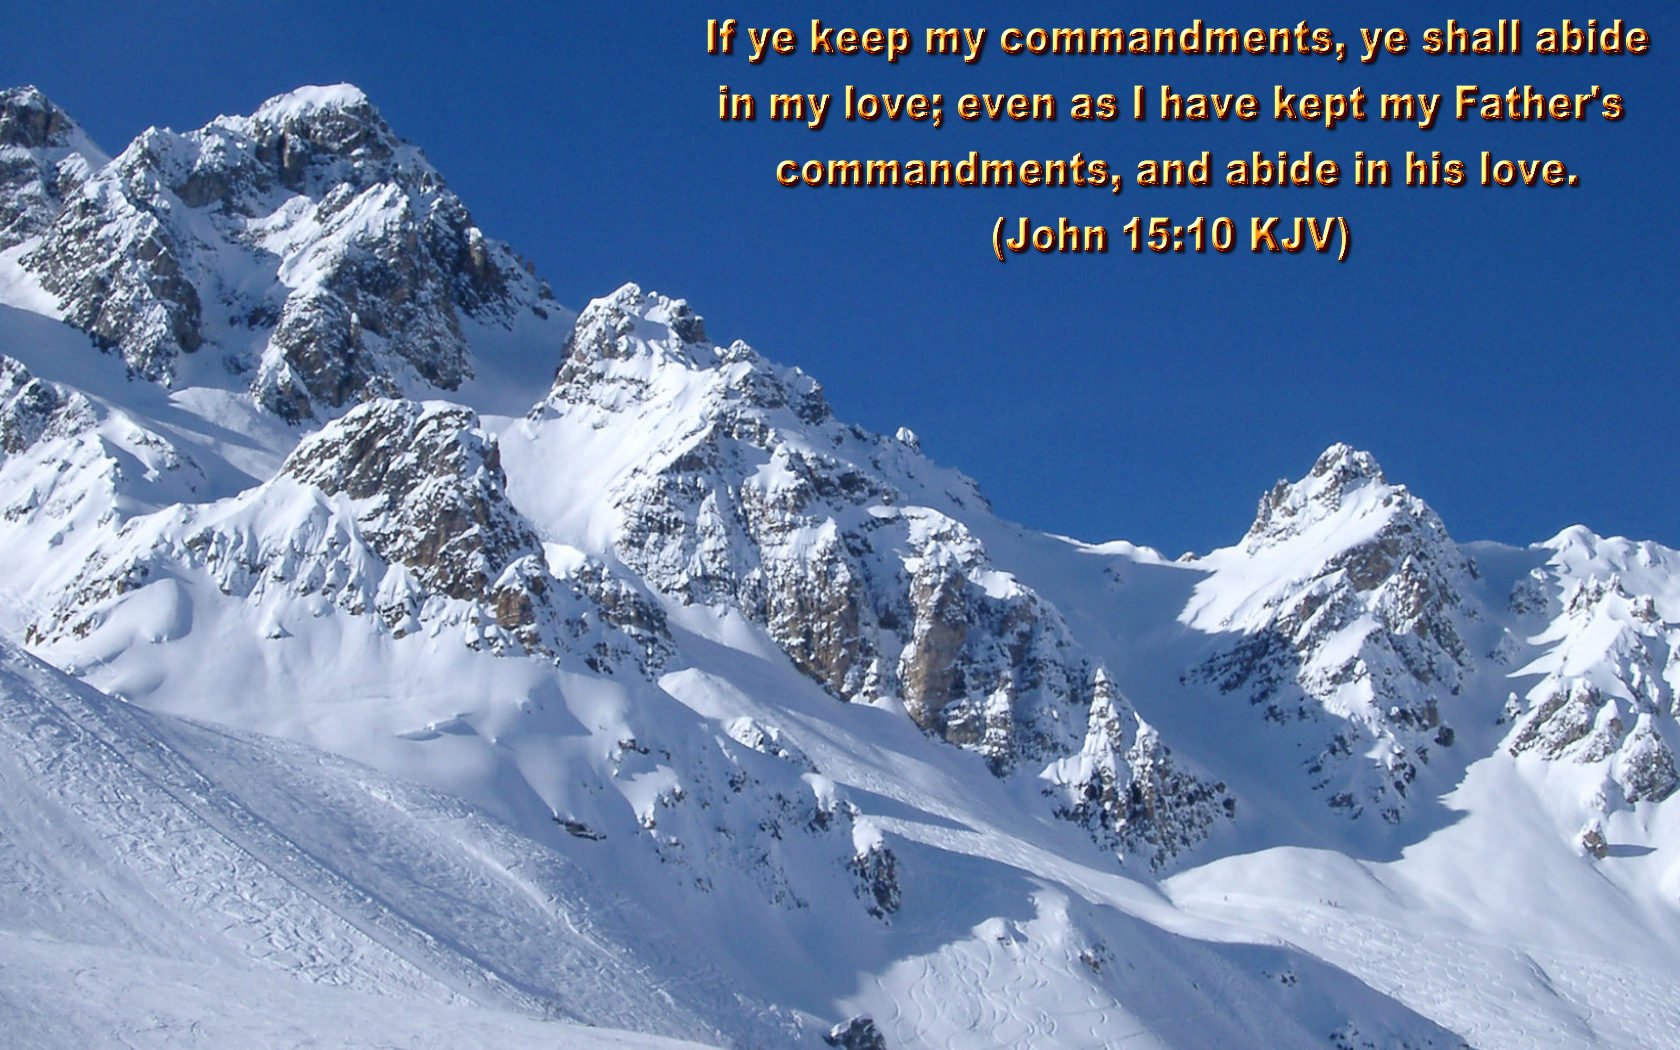 Christian Pictures with Bible Verses KJV By wwwturnbacktogodcom 1680x1050